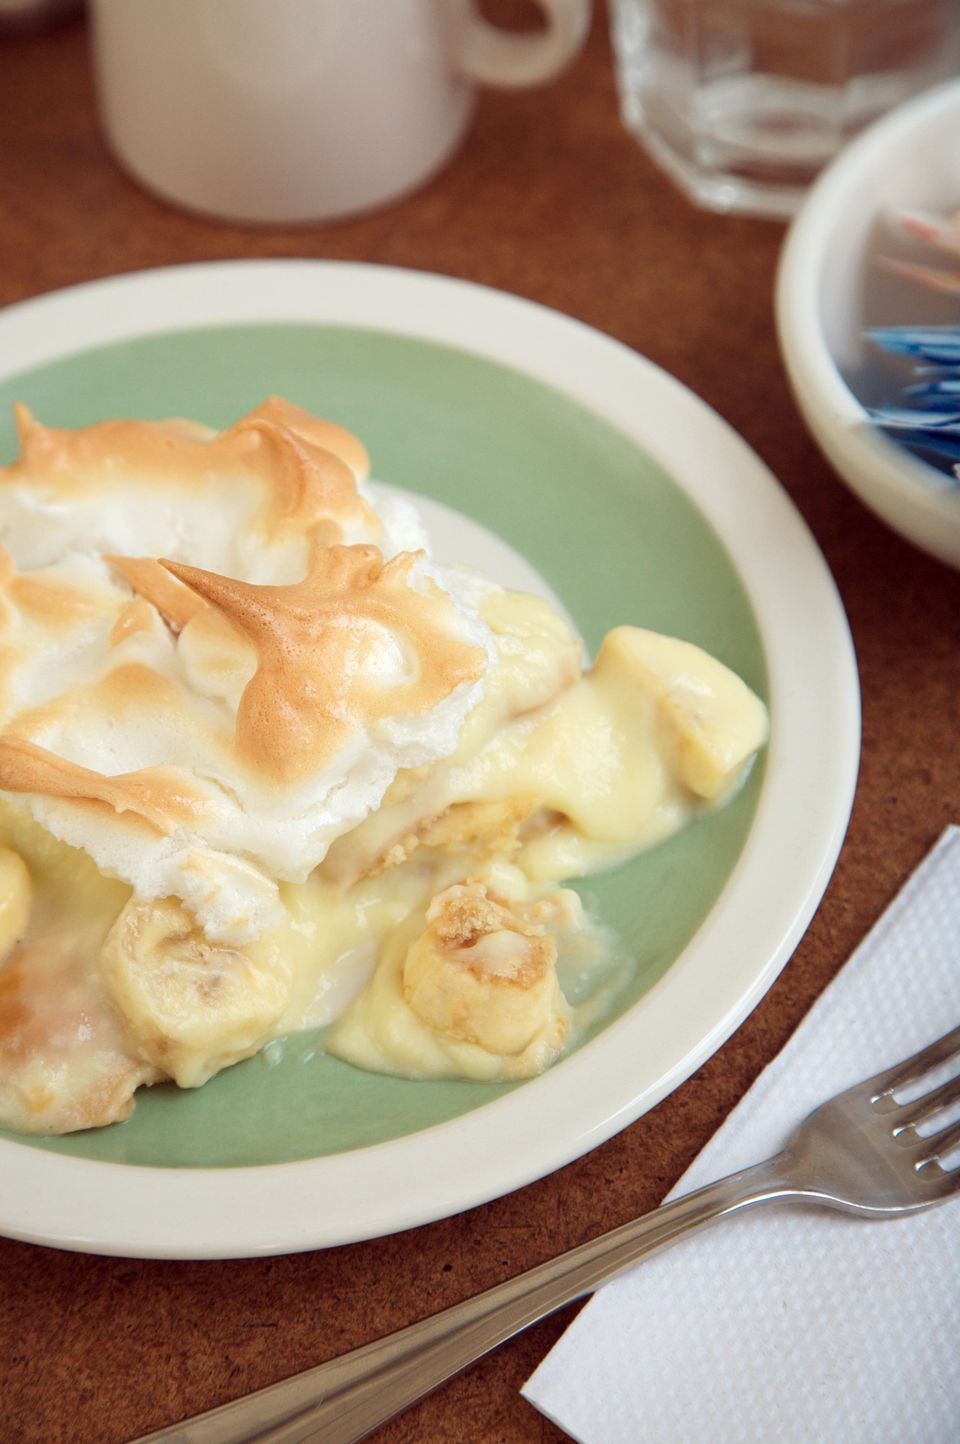 Baked Banana Pudding with Meringue